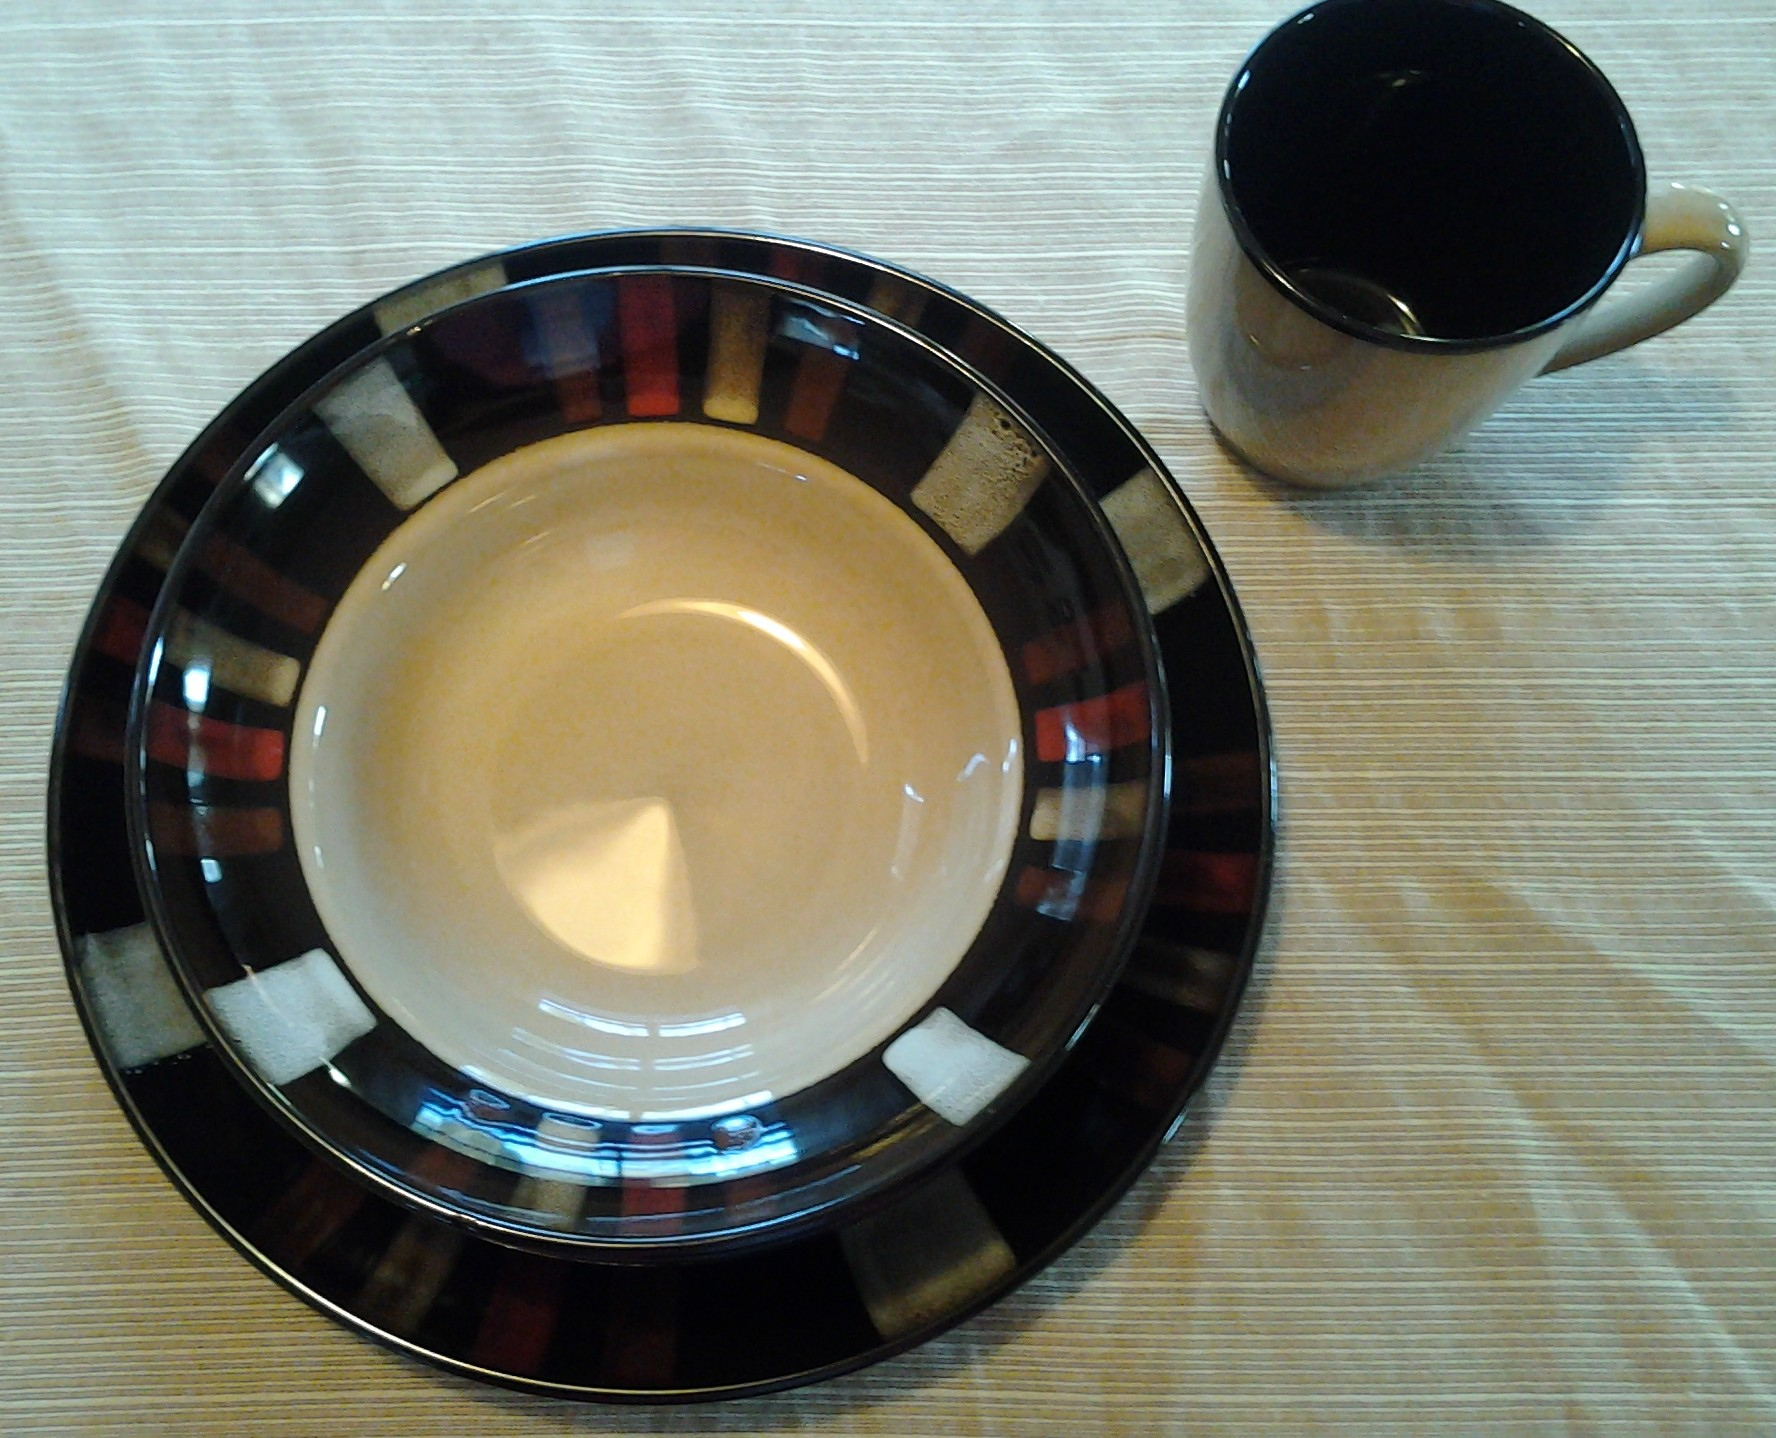 Pfaltzgraff Tahoe Dinnerware set for lovely dinnerware ideas